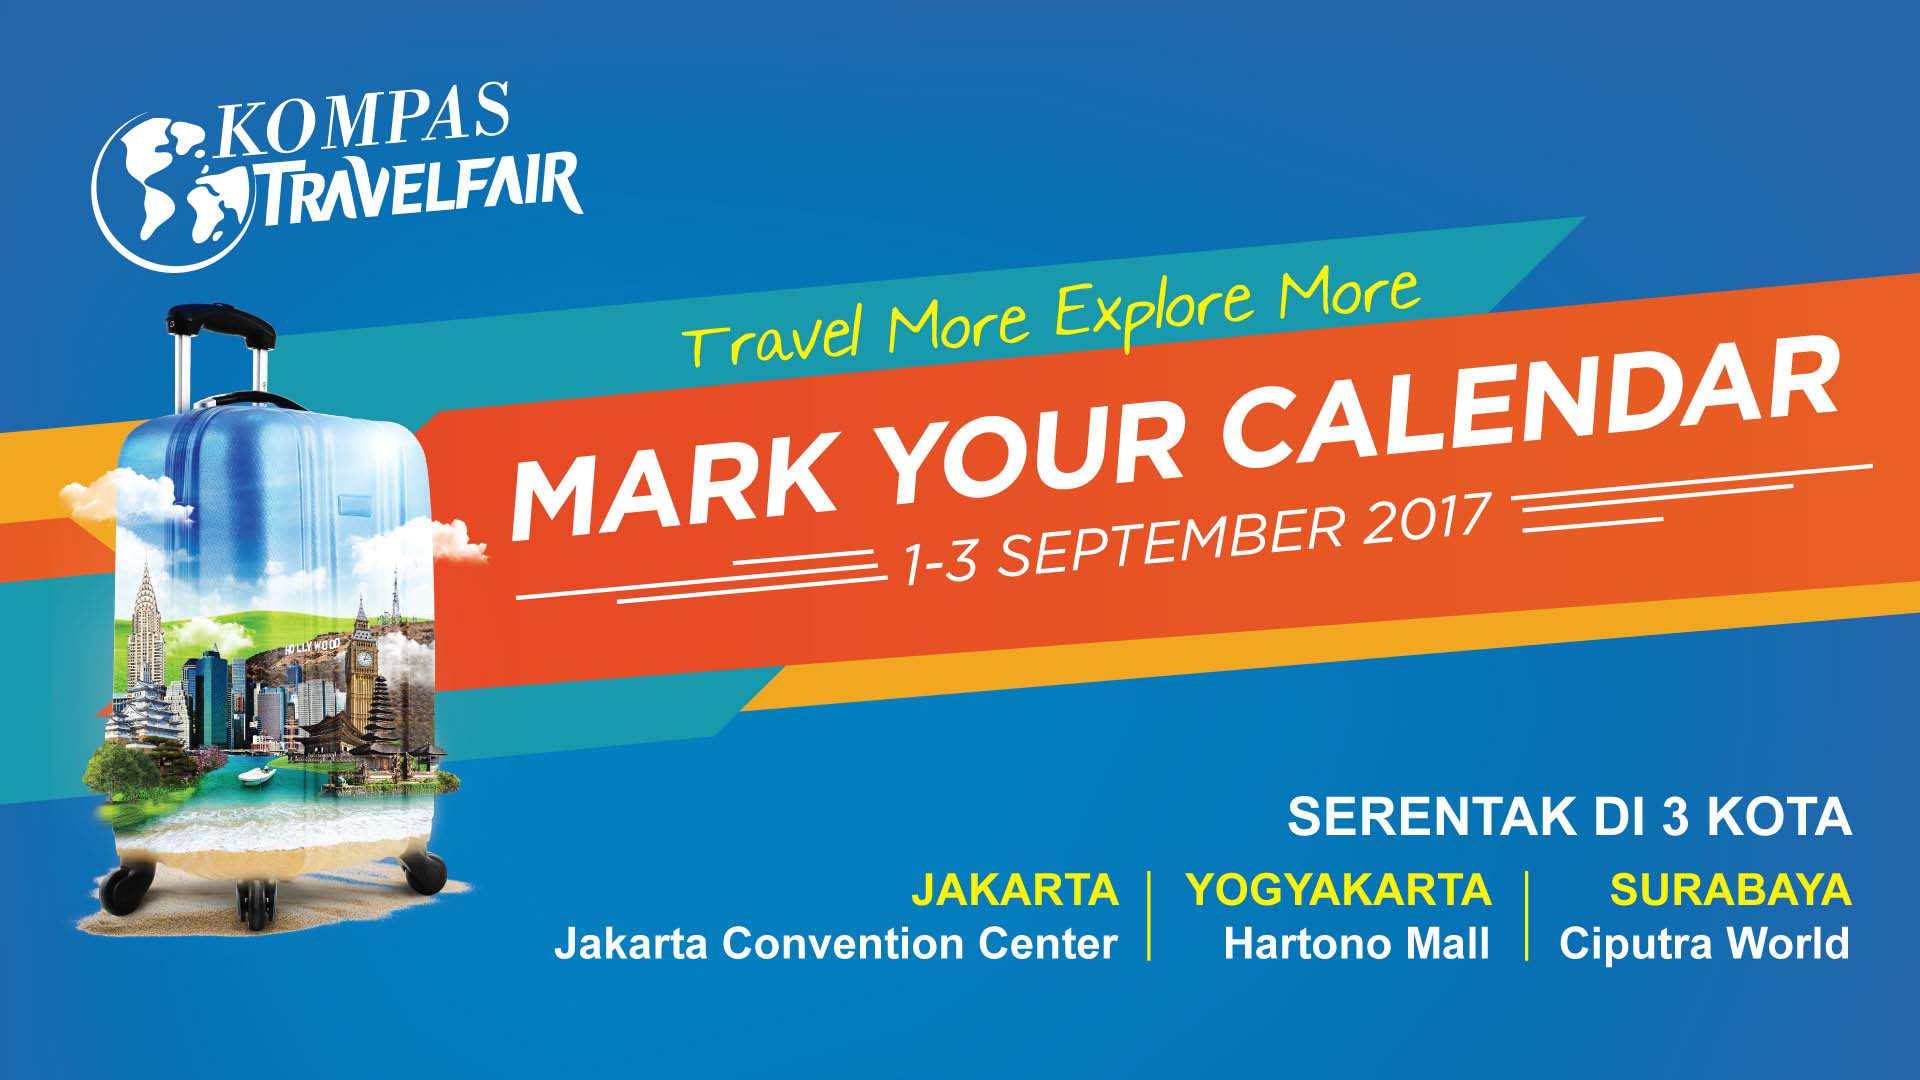 kompas travel fair 2017